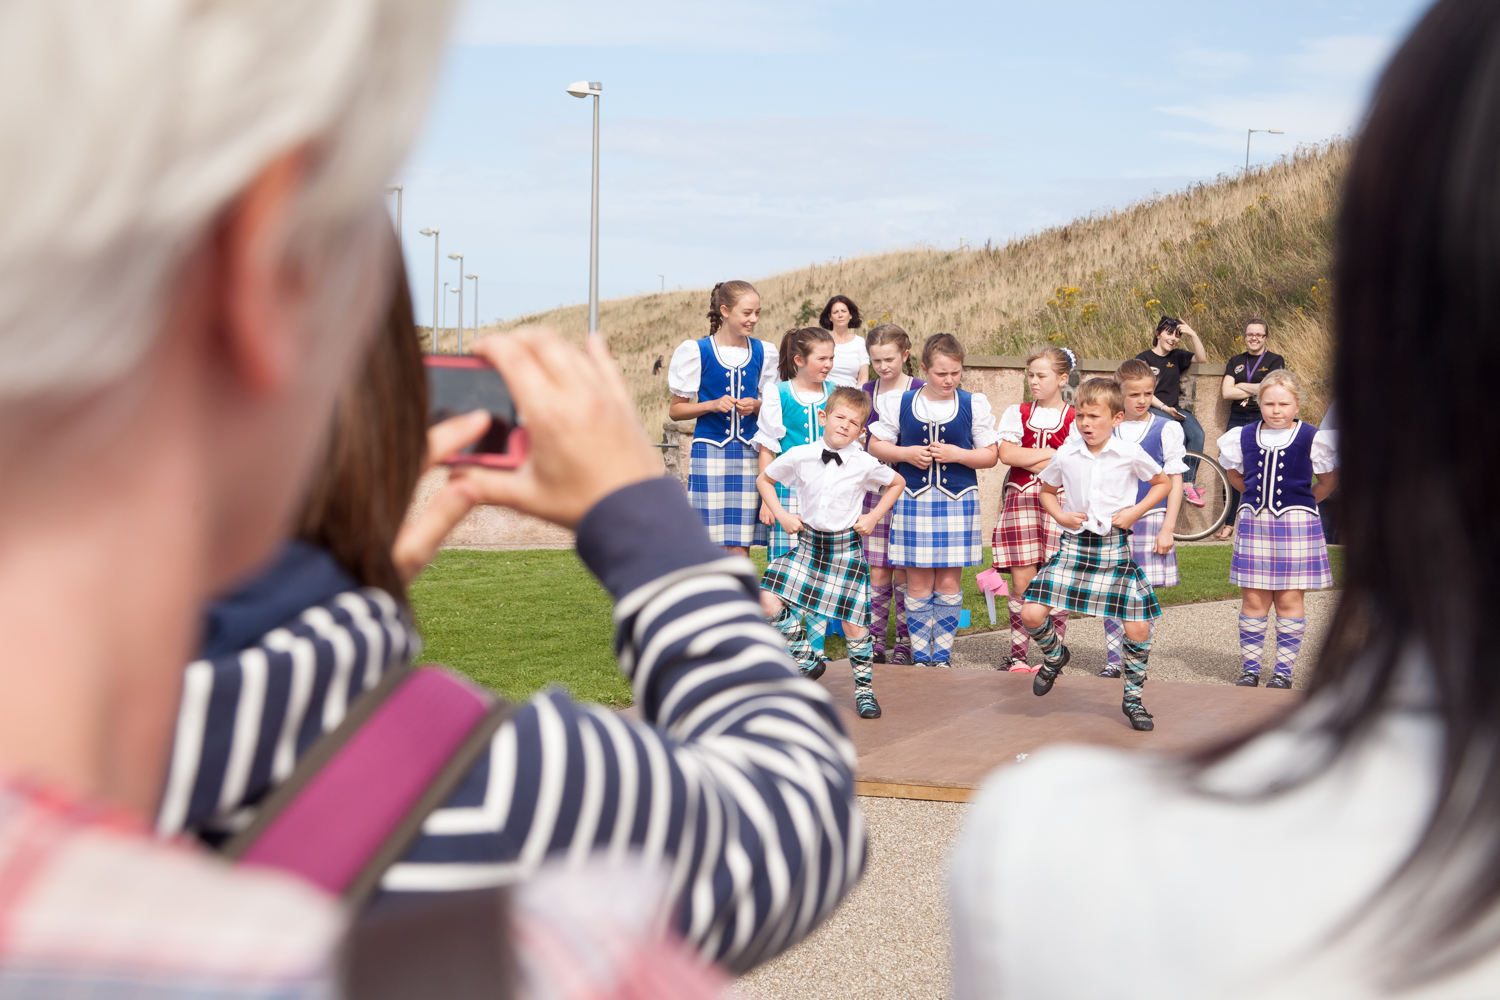 PICTORIAL_BERWICK_eyemouth-gunsgreen-extravaganza-photography-entertainment-party-event-photographer-harbour-gary-dunn-dancers-stilts-performances-speeches-day-out-summer-4610.jpg